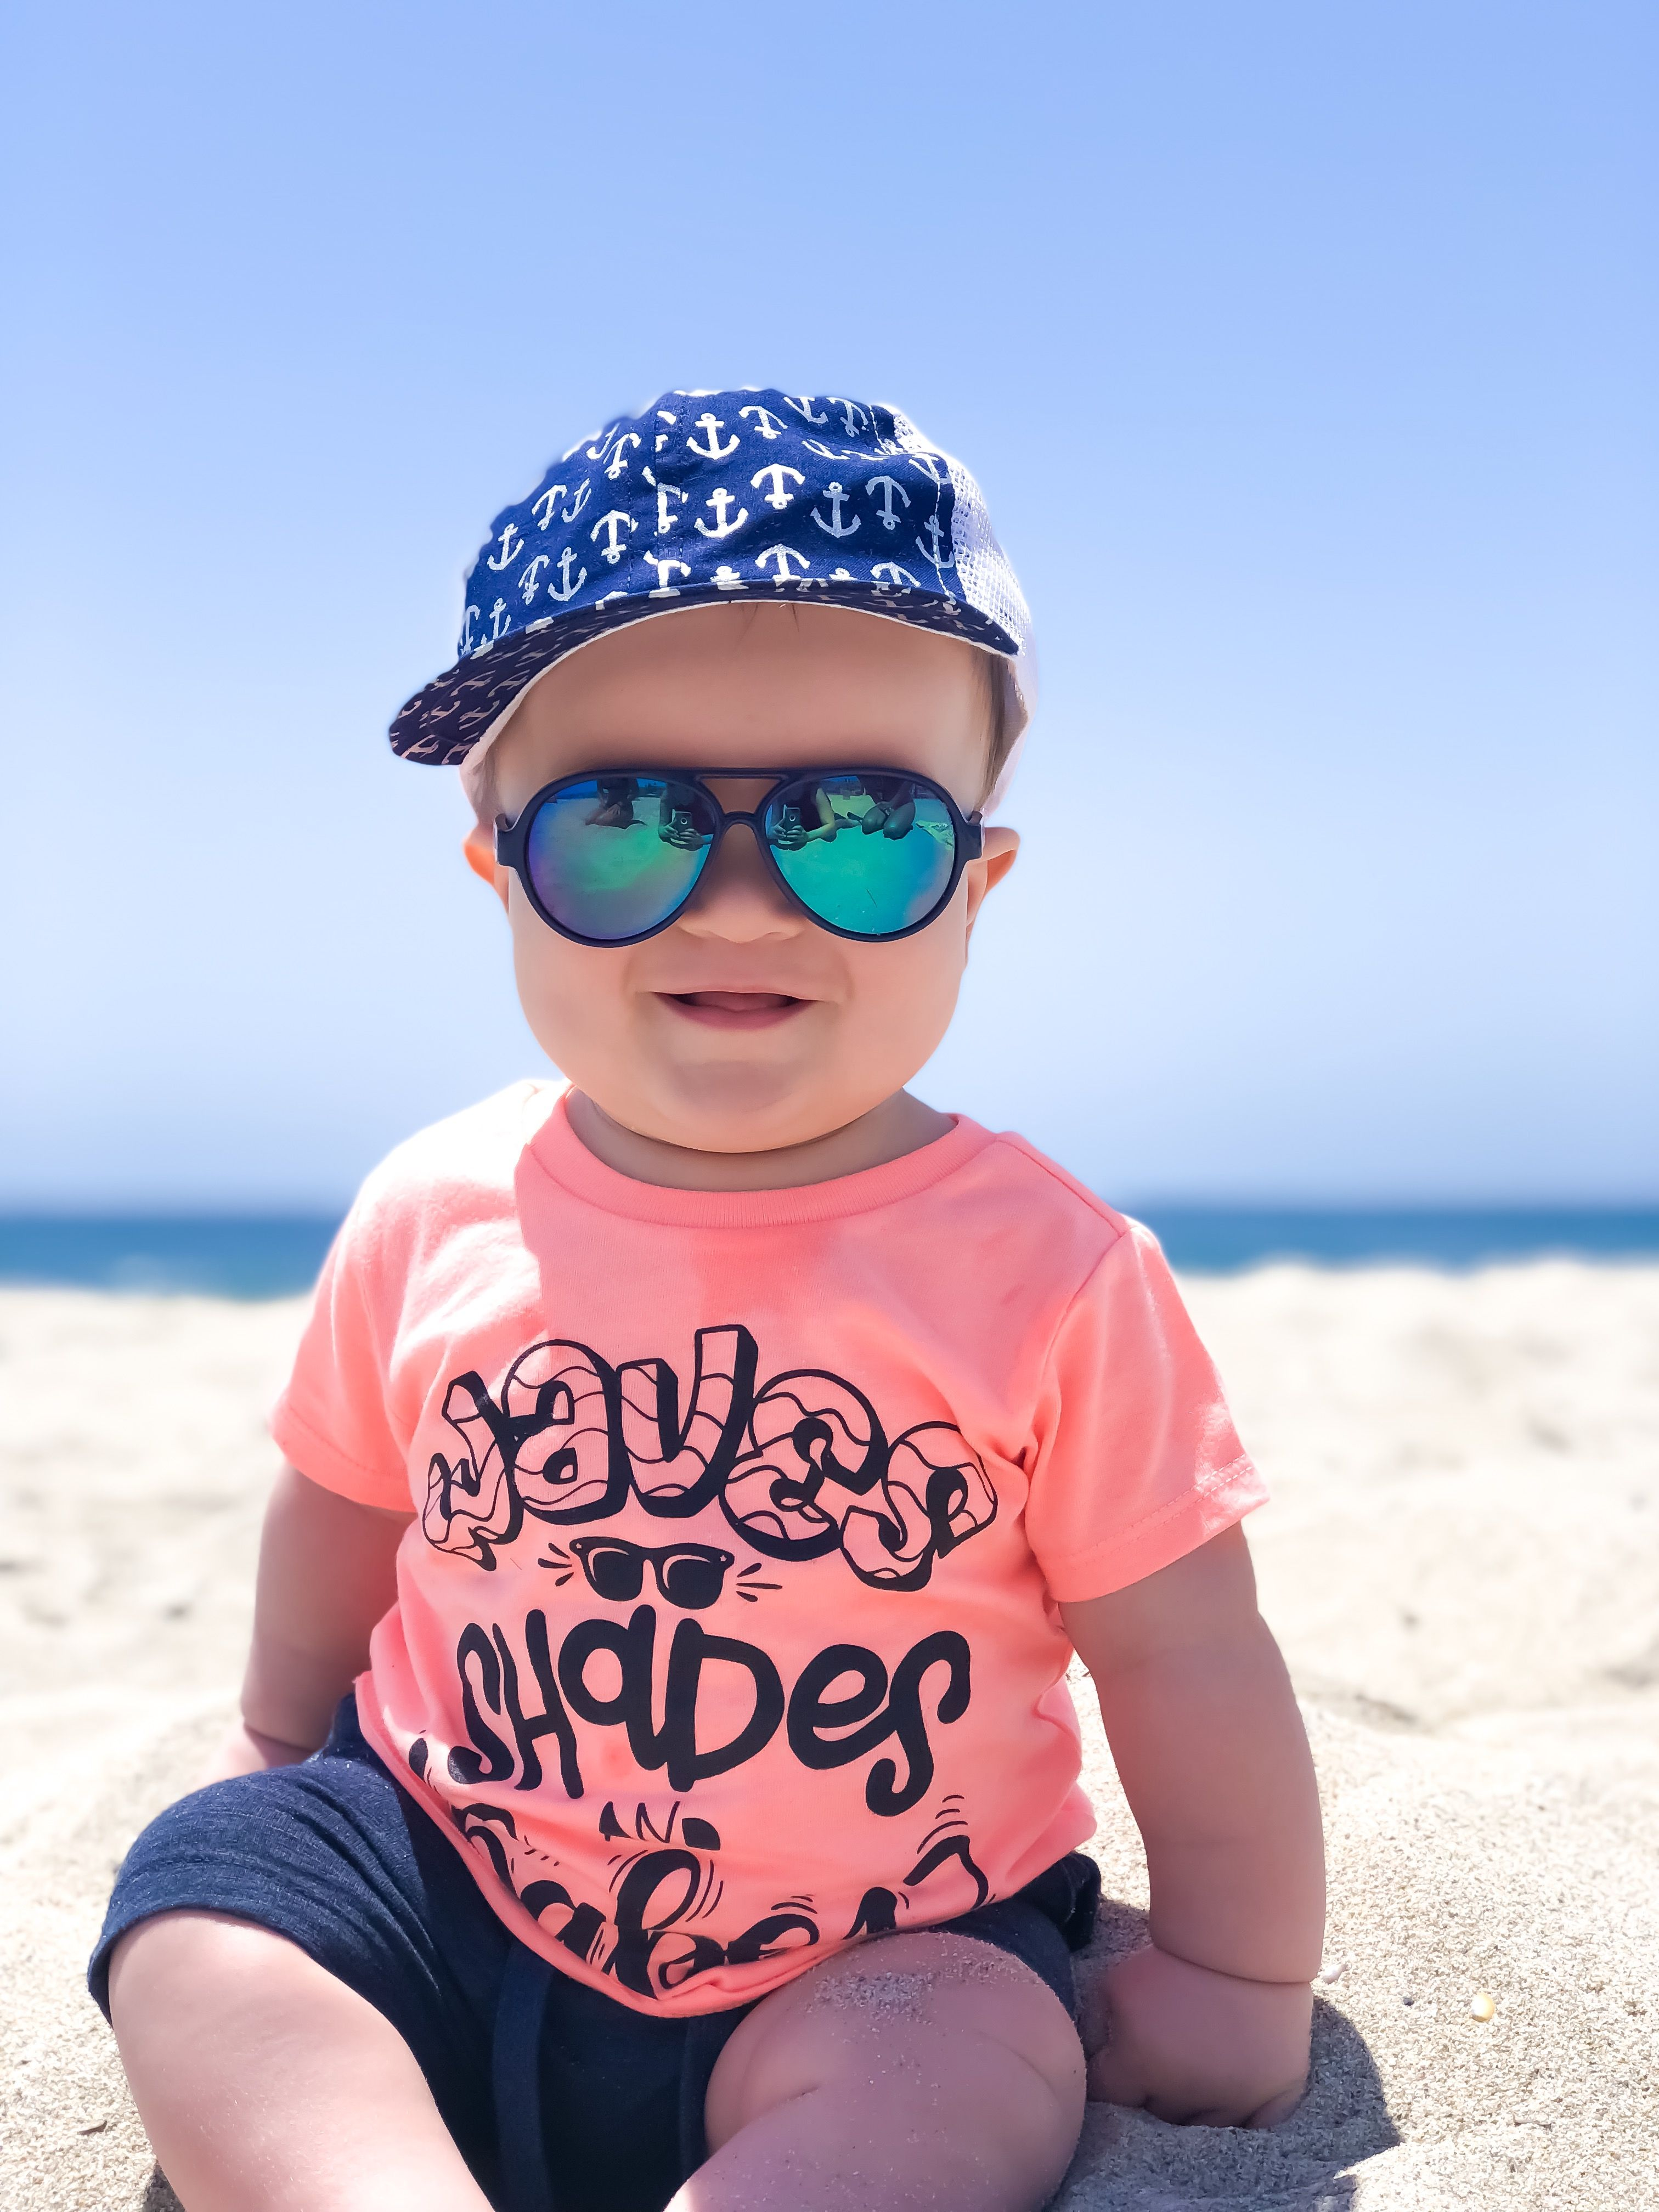 a026b3851be5 Waves shades and babes toddler summer tee